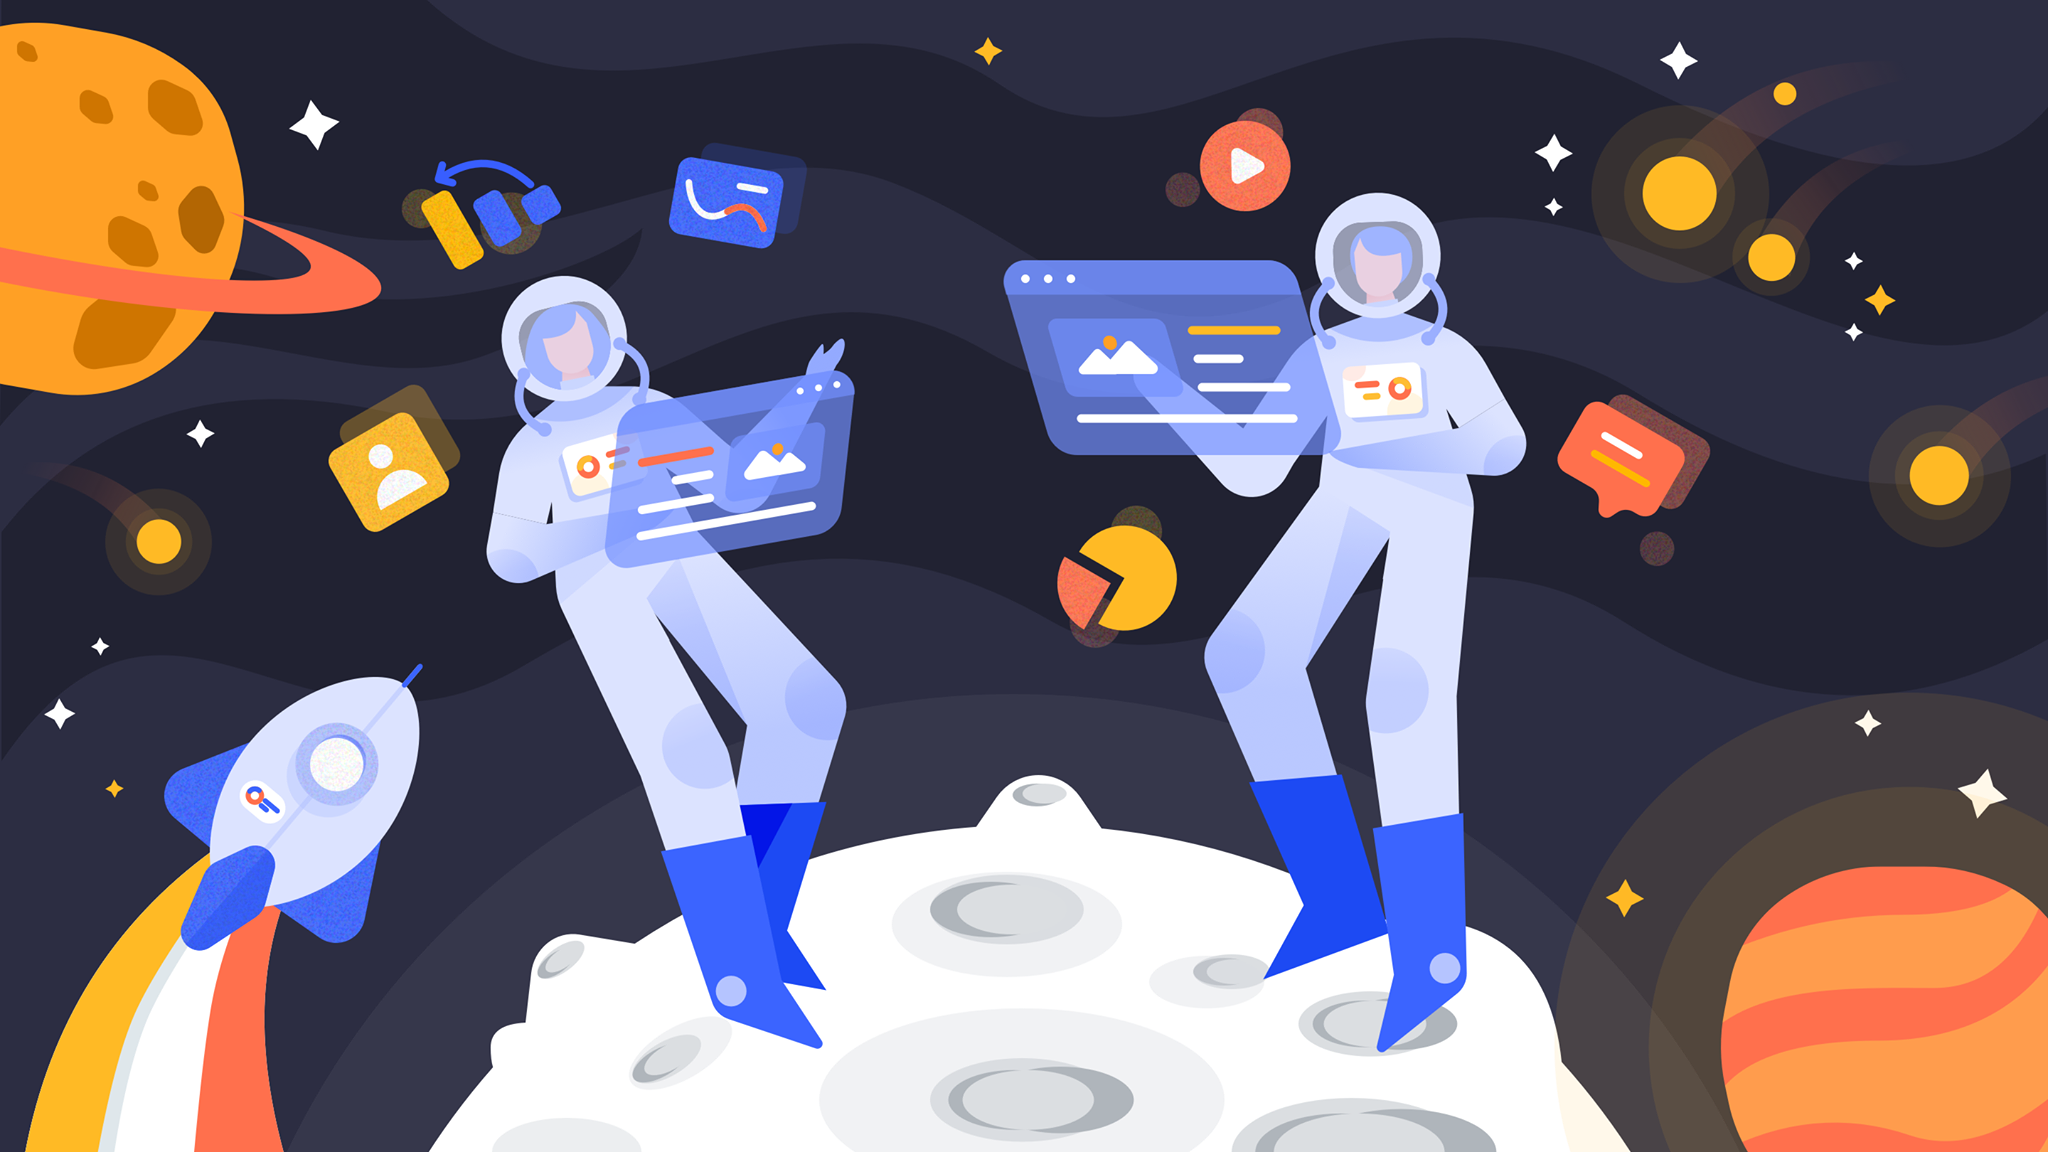 HubSpot CMS Hub: the future of content management